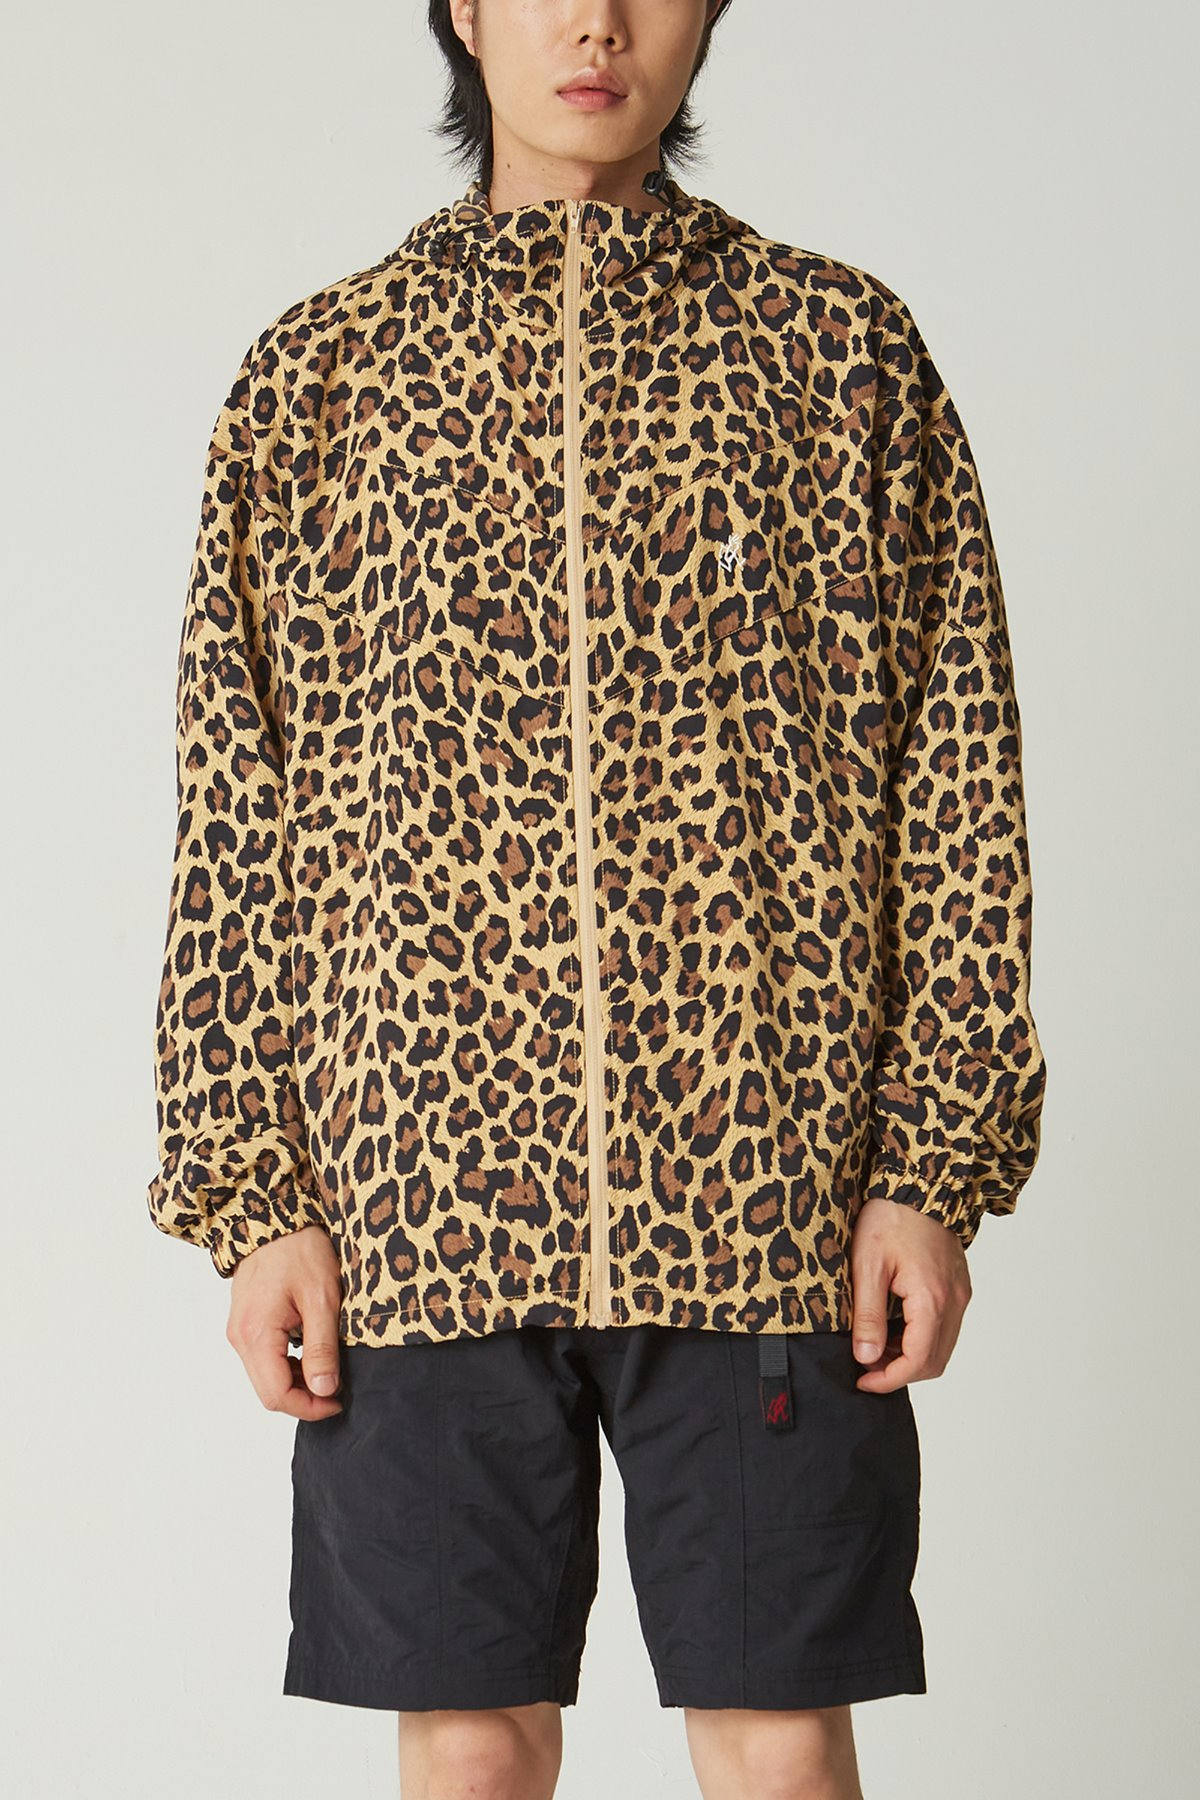 SHELL JACKET LEOPARD